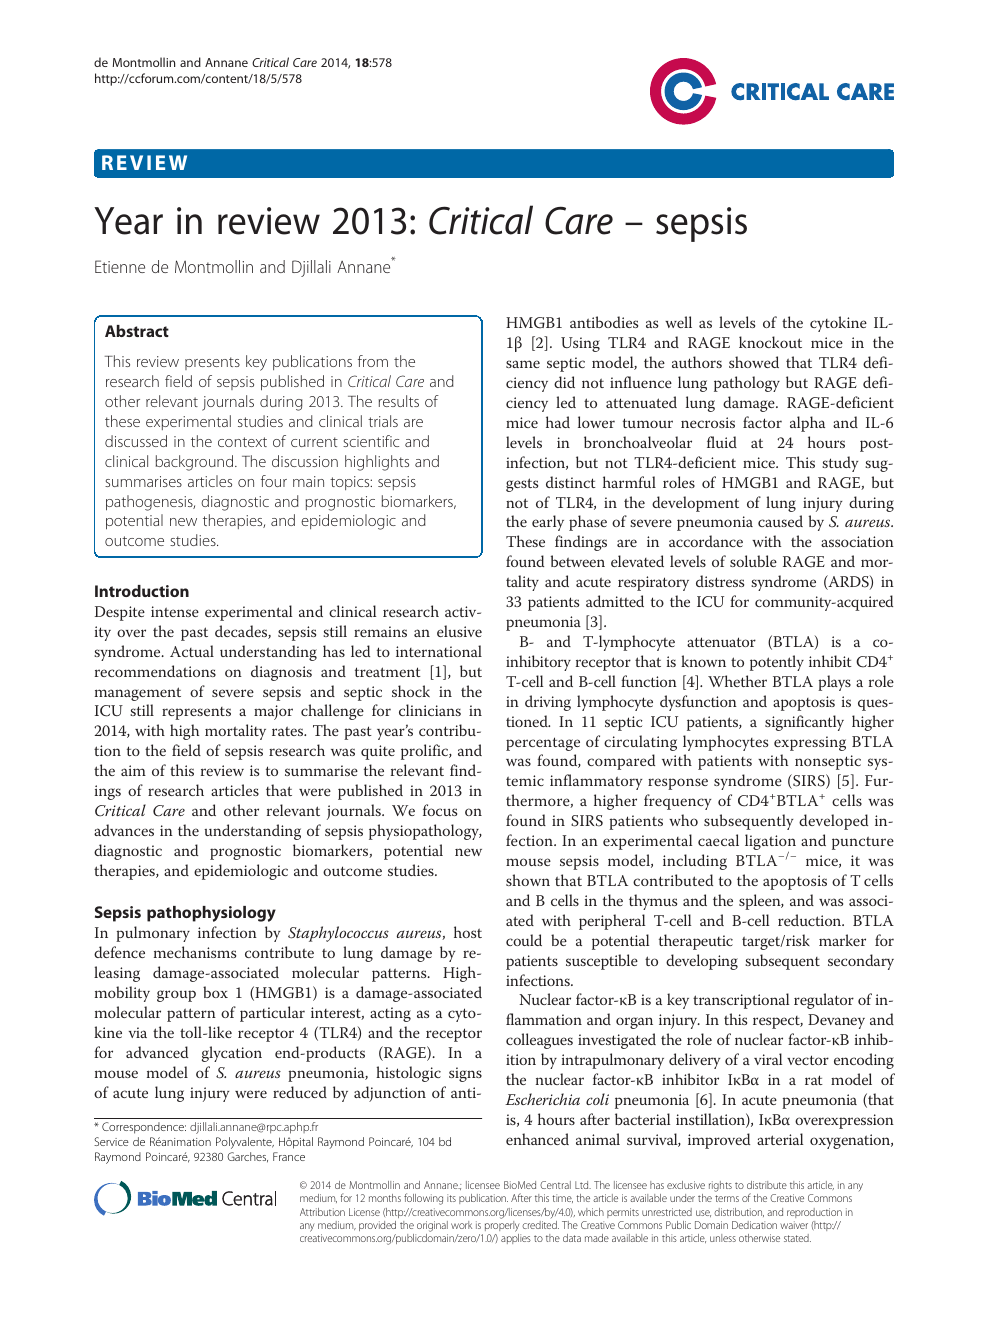 Year in review 2013: Critical Care – sepsis – topic of research